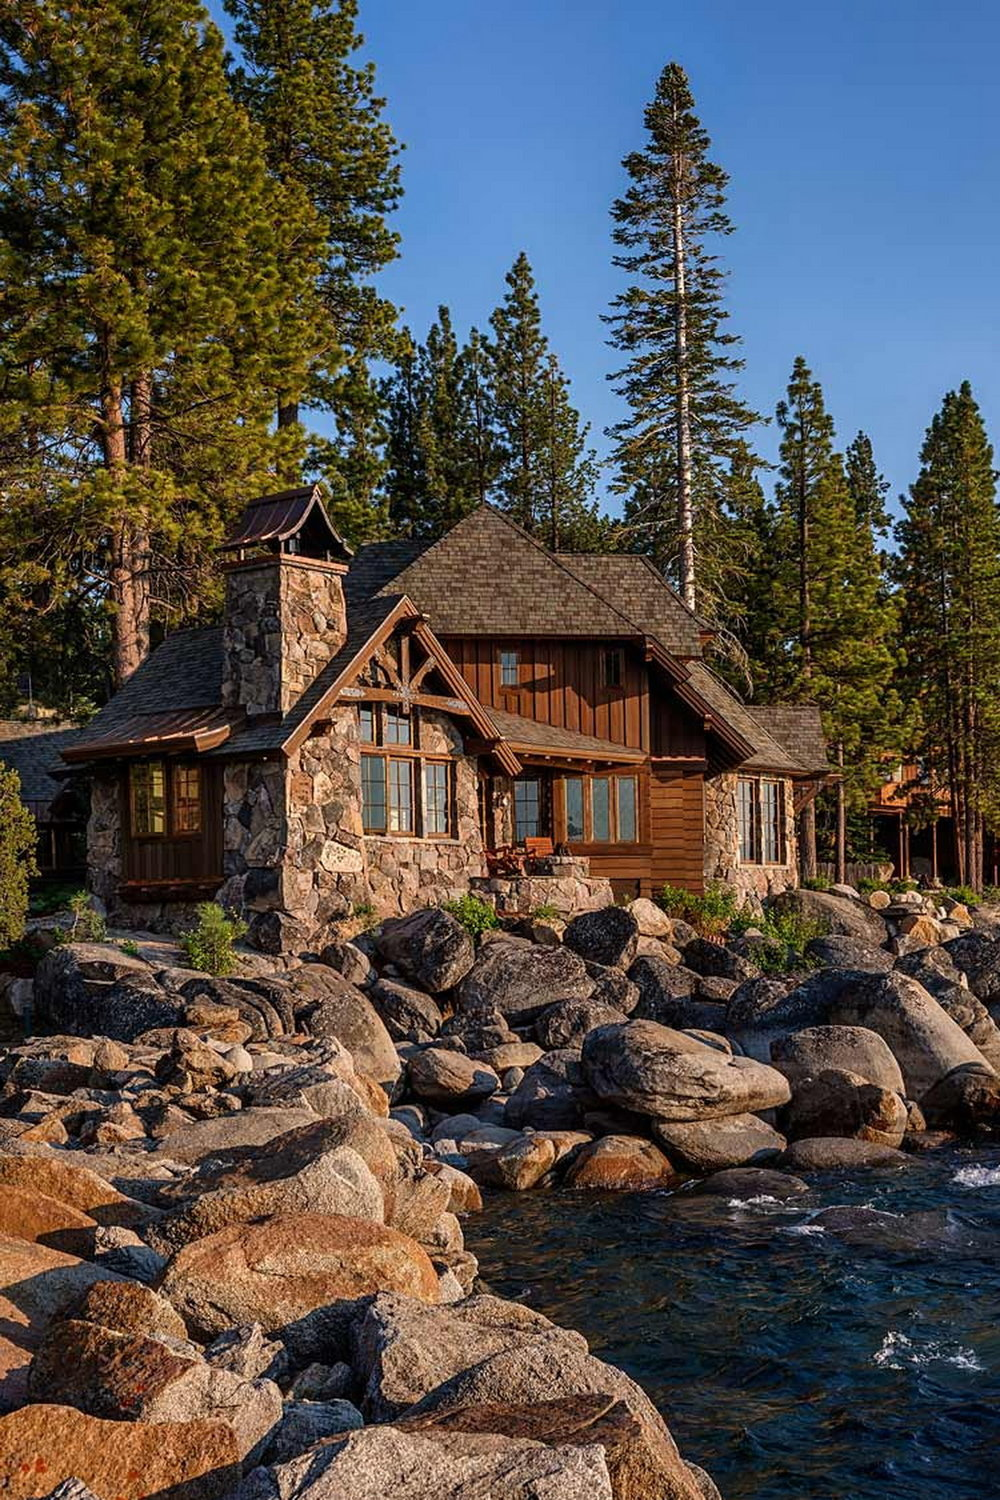 East Shore Residence, Lake Tahoe, NV by Architect, Dennis E. Zirbell